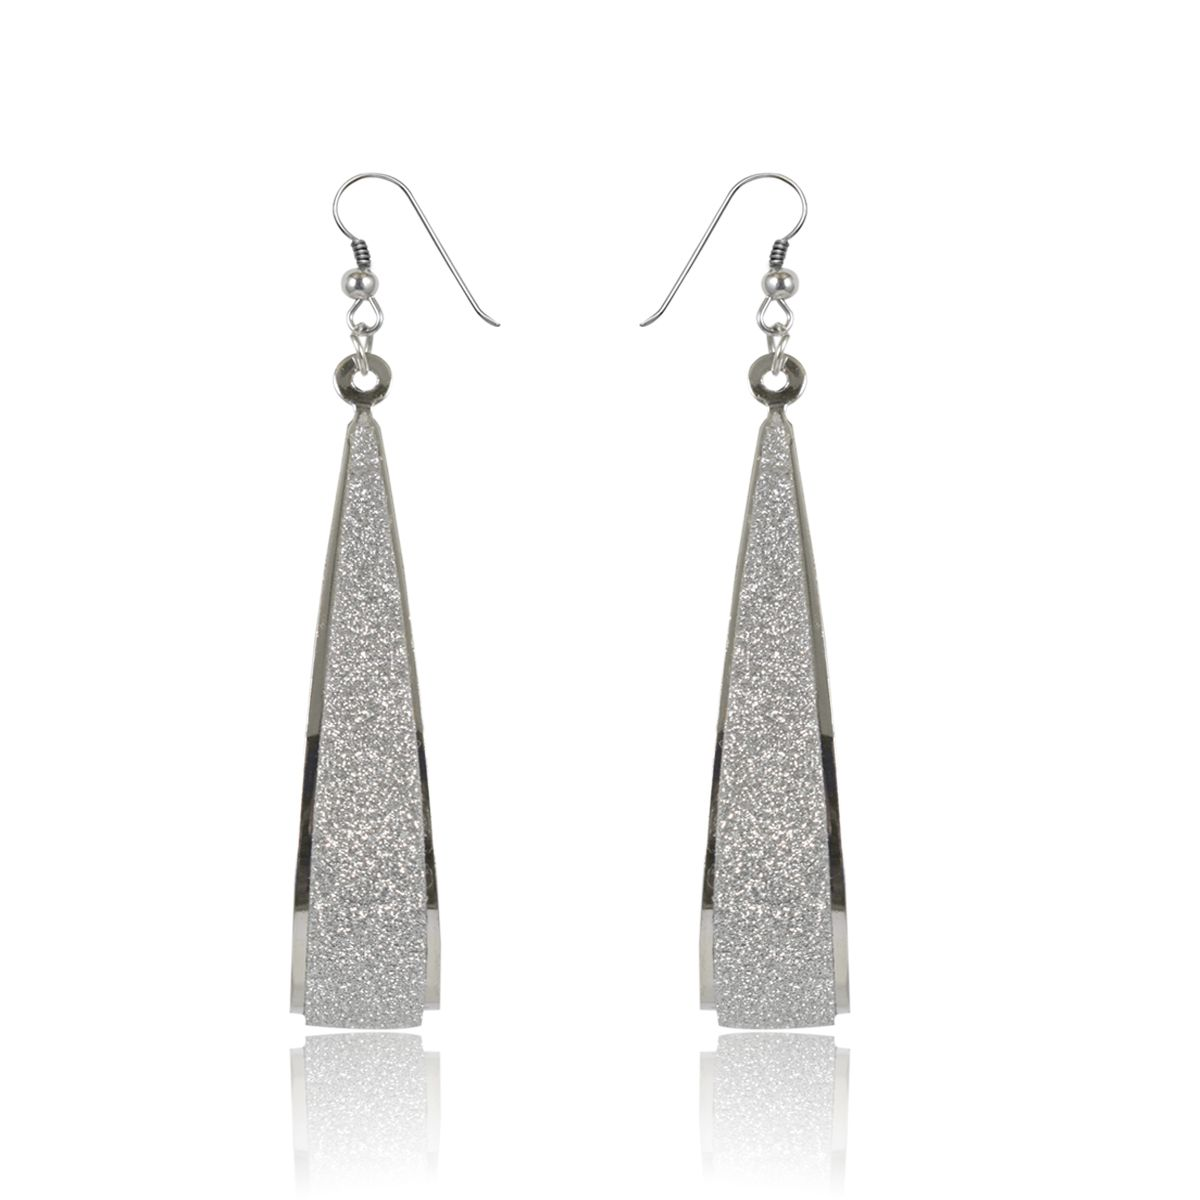 Slamay Fashion Silver Plated Earring Gift for Girl